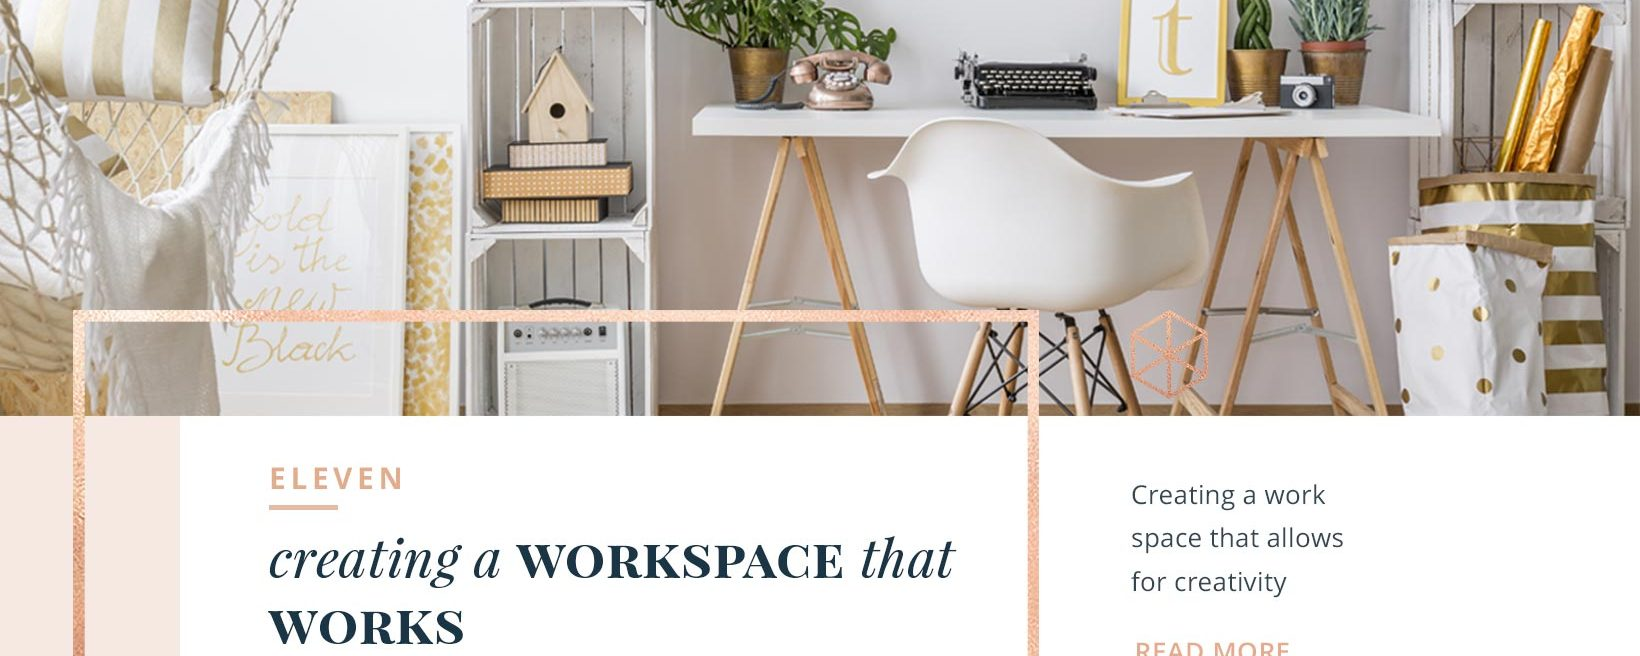 ELEVEN: Creating a Workspace that Works